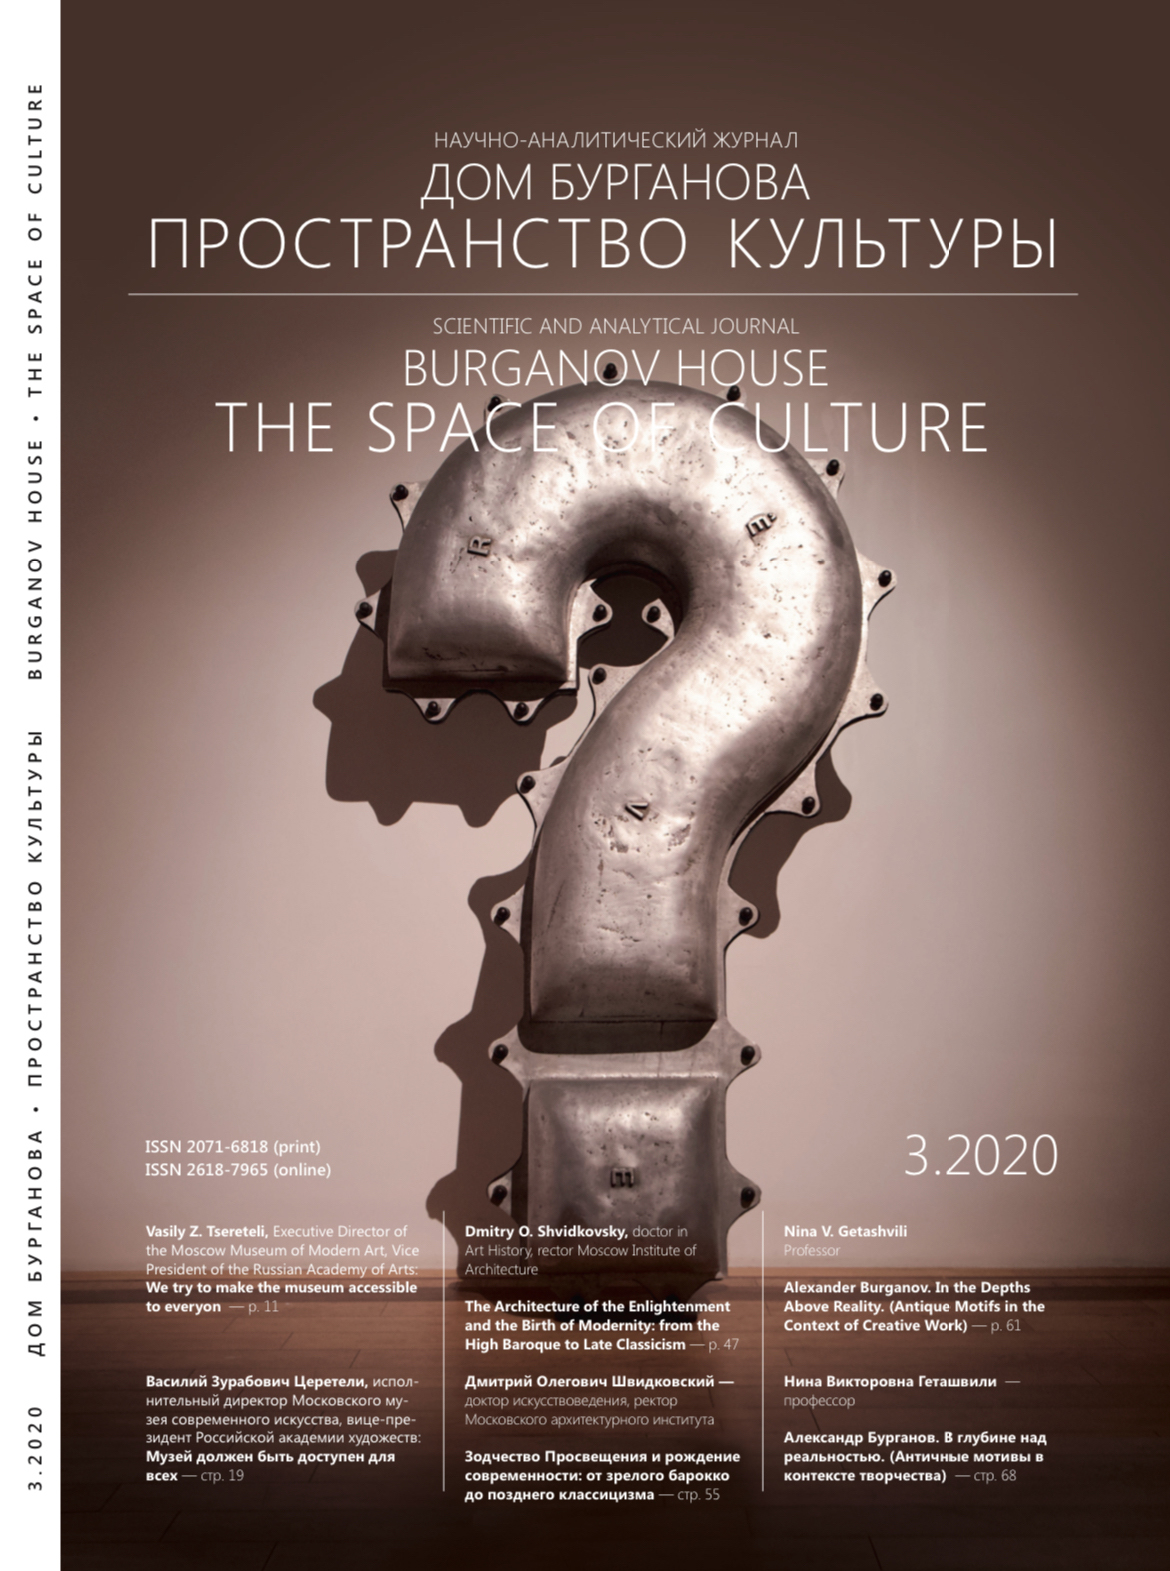 Journal Burganov House. The Space of Culture. 3.2020